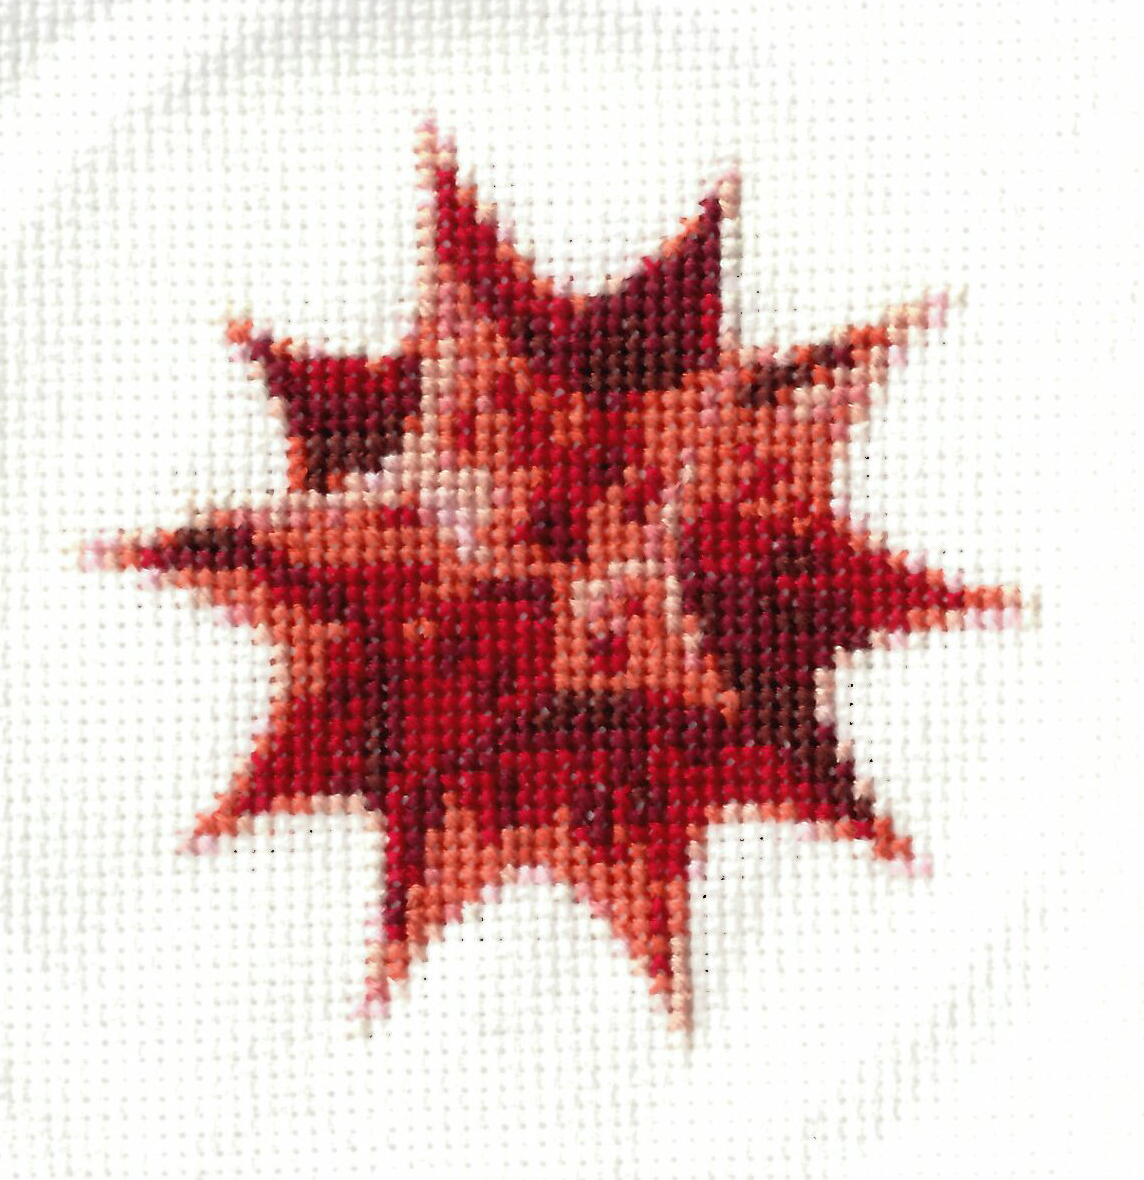 Completed Spikey cross-stitch